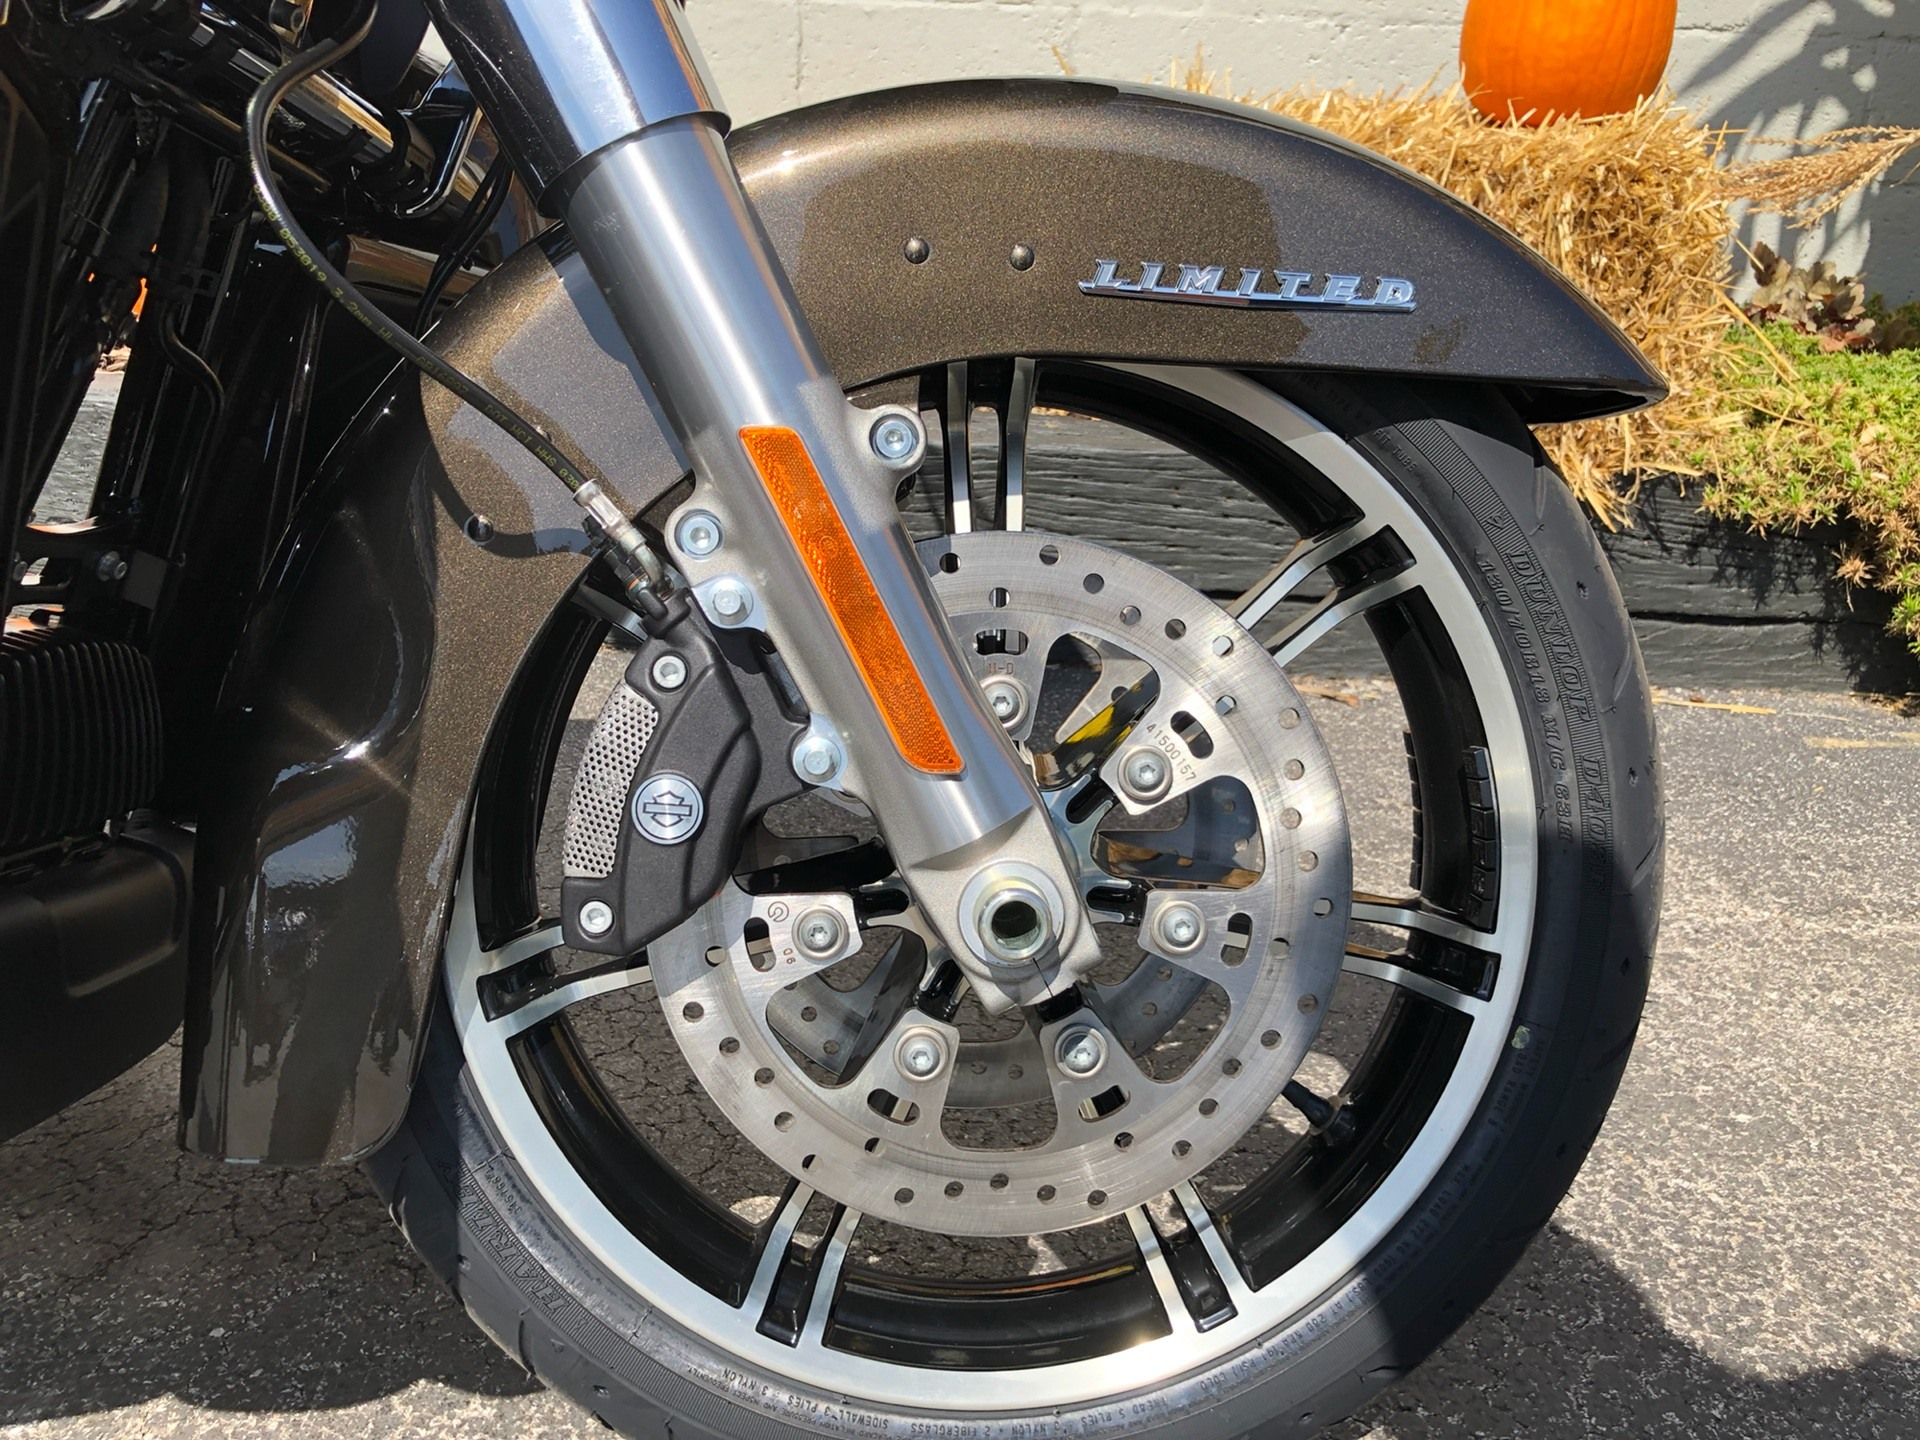 2020 Harley-Davidson FLTRX in Sunbury, Ohio - Photo 10